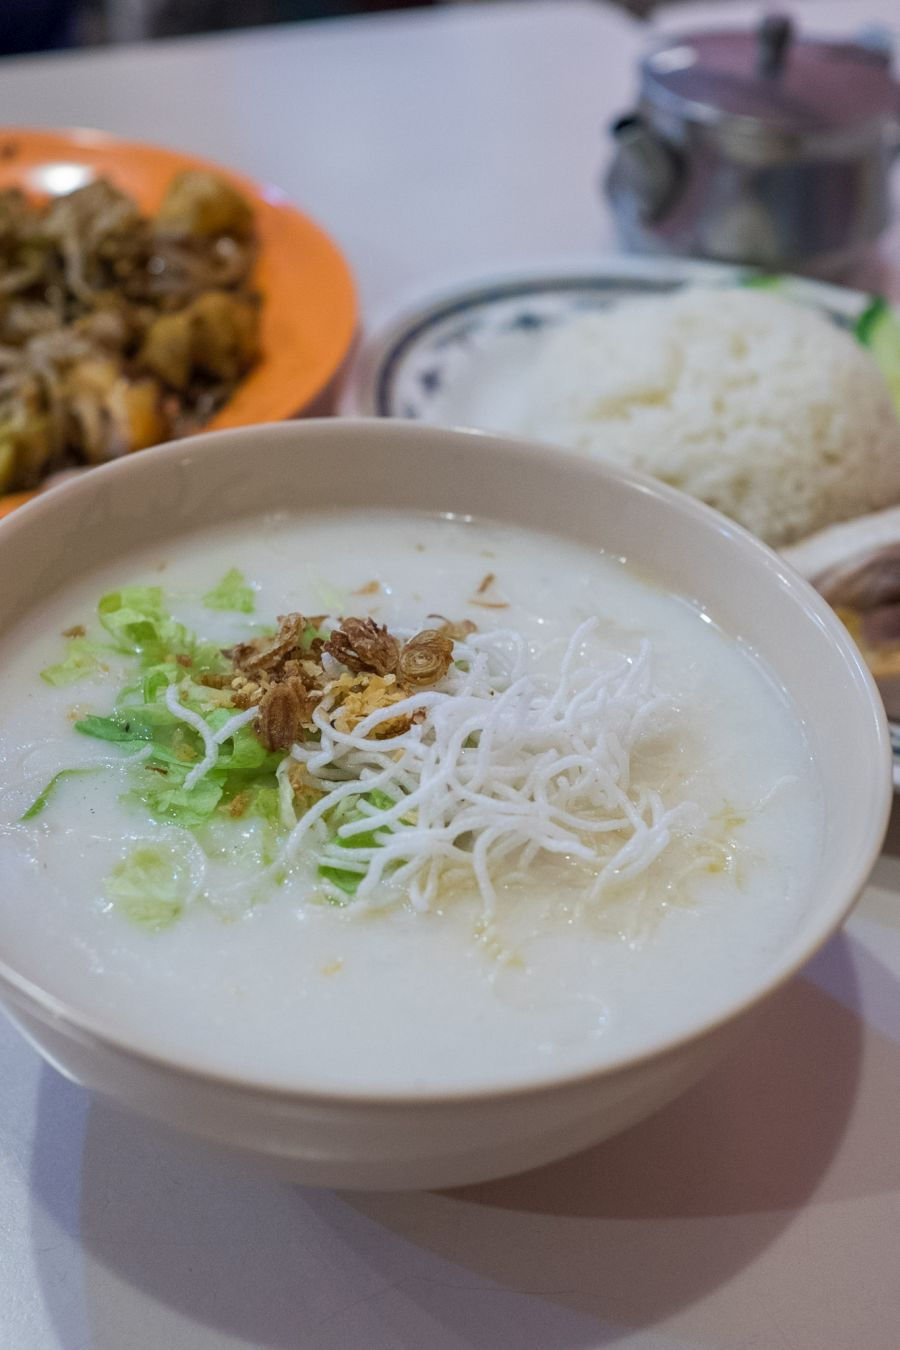 Chicken porridge (AU$7.50) - Cantonese-style rice porridge with shredded chicken